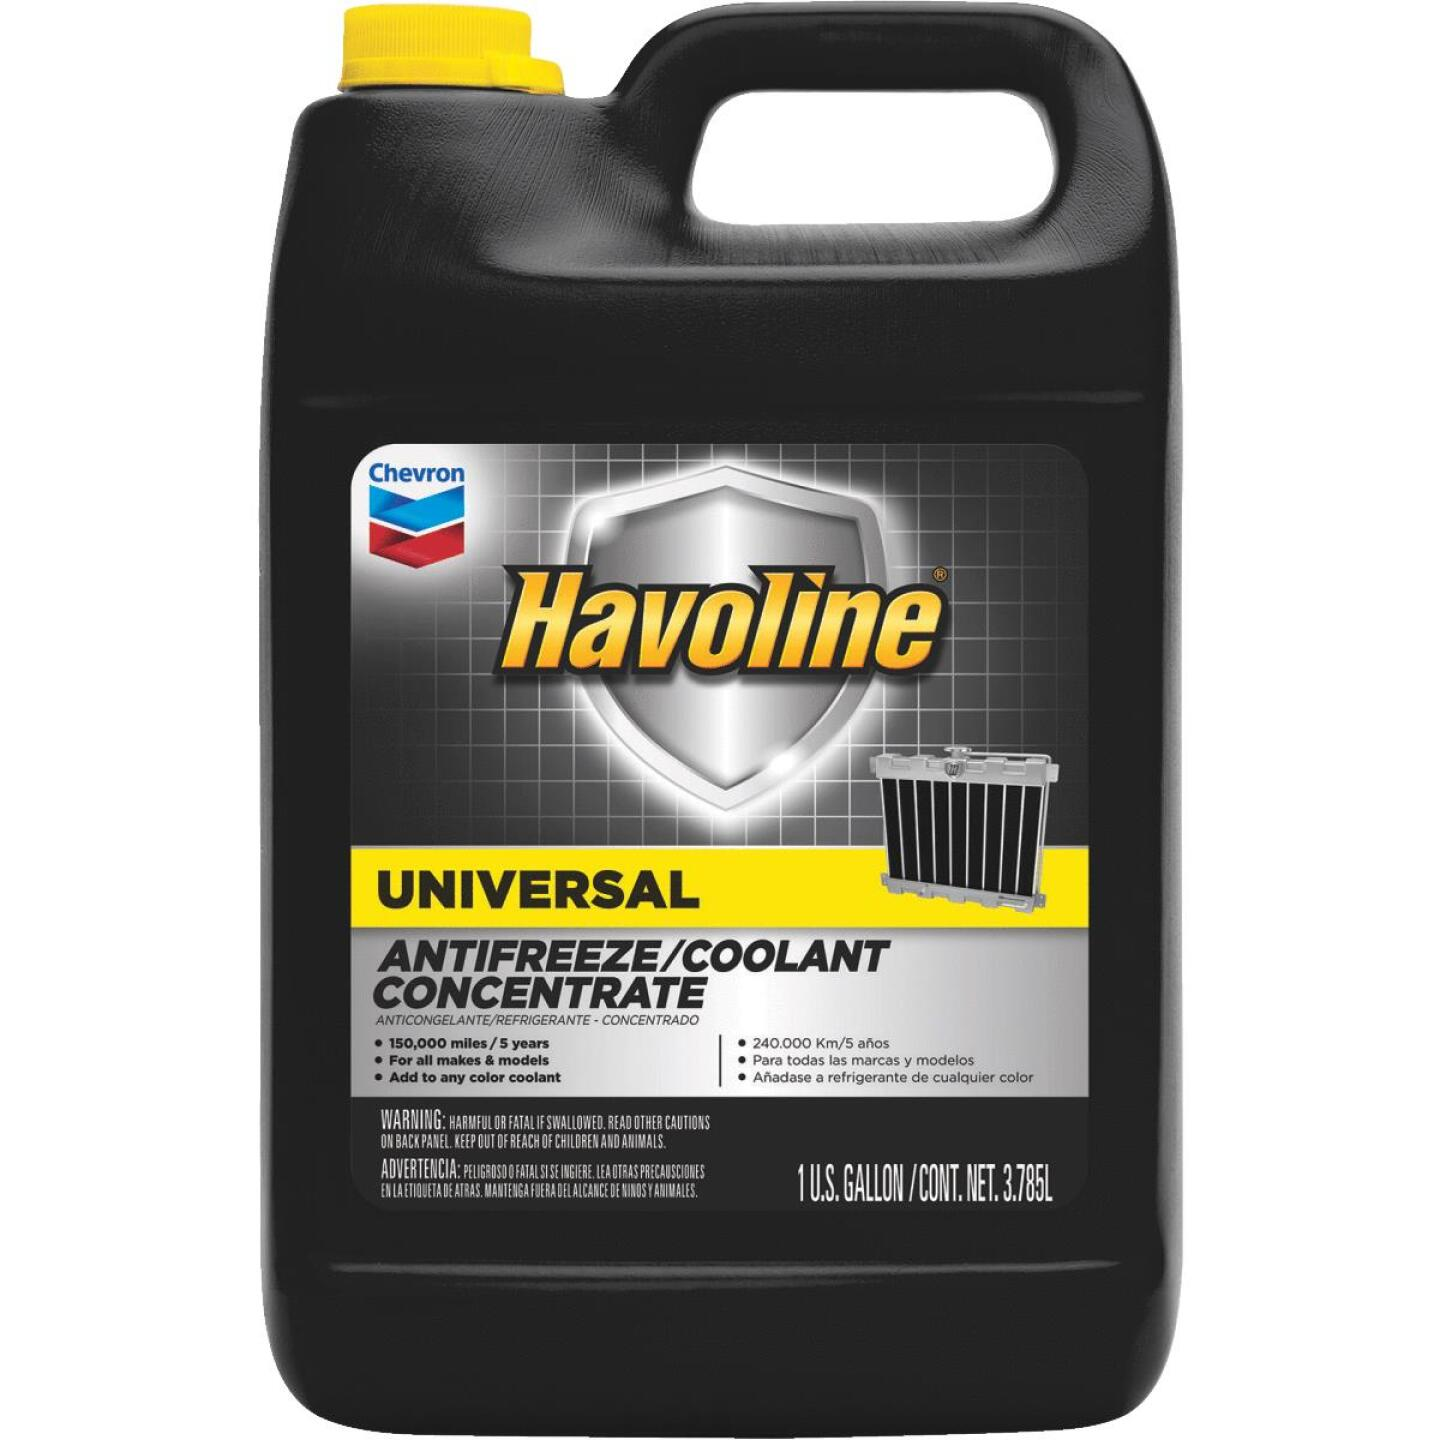 Havoline Universal Gallon Concentrate -34 F to 265 F Automotive Antifreeze Image 1